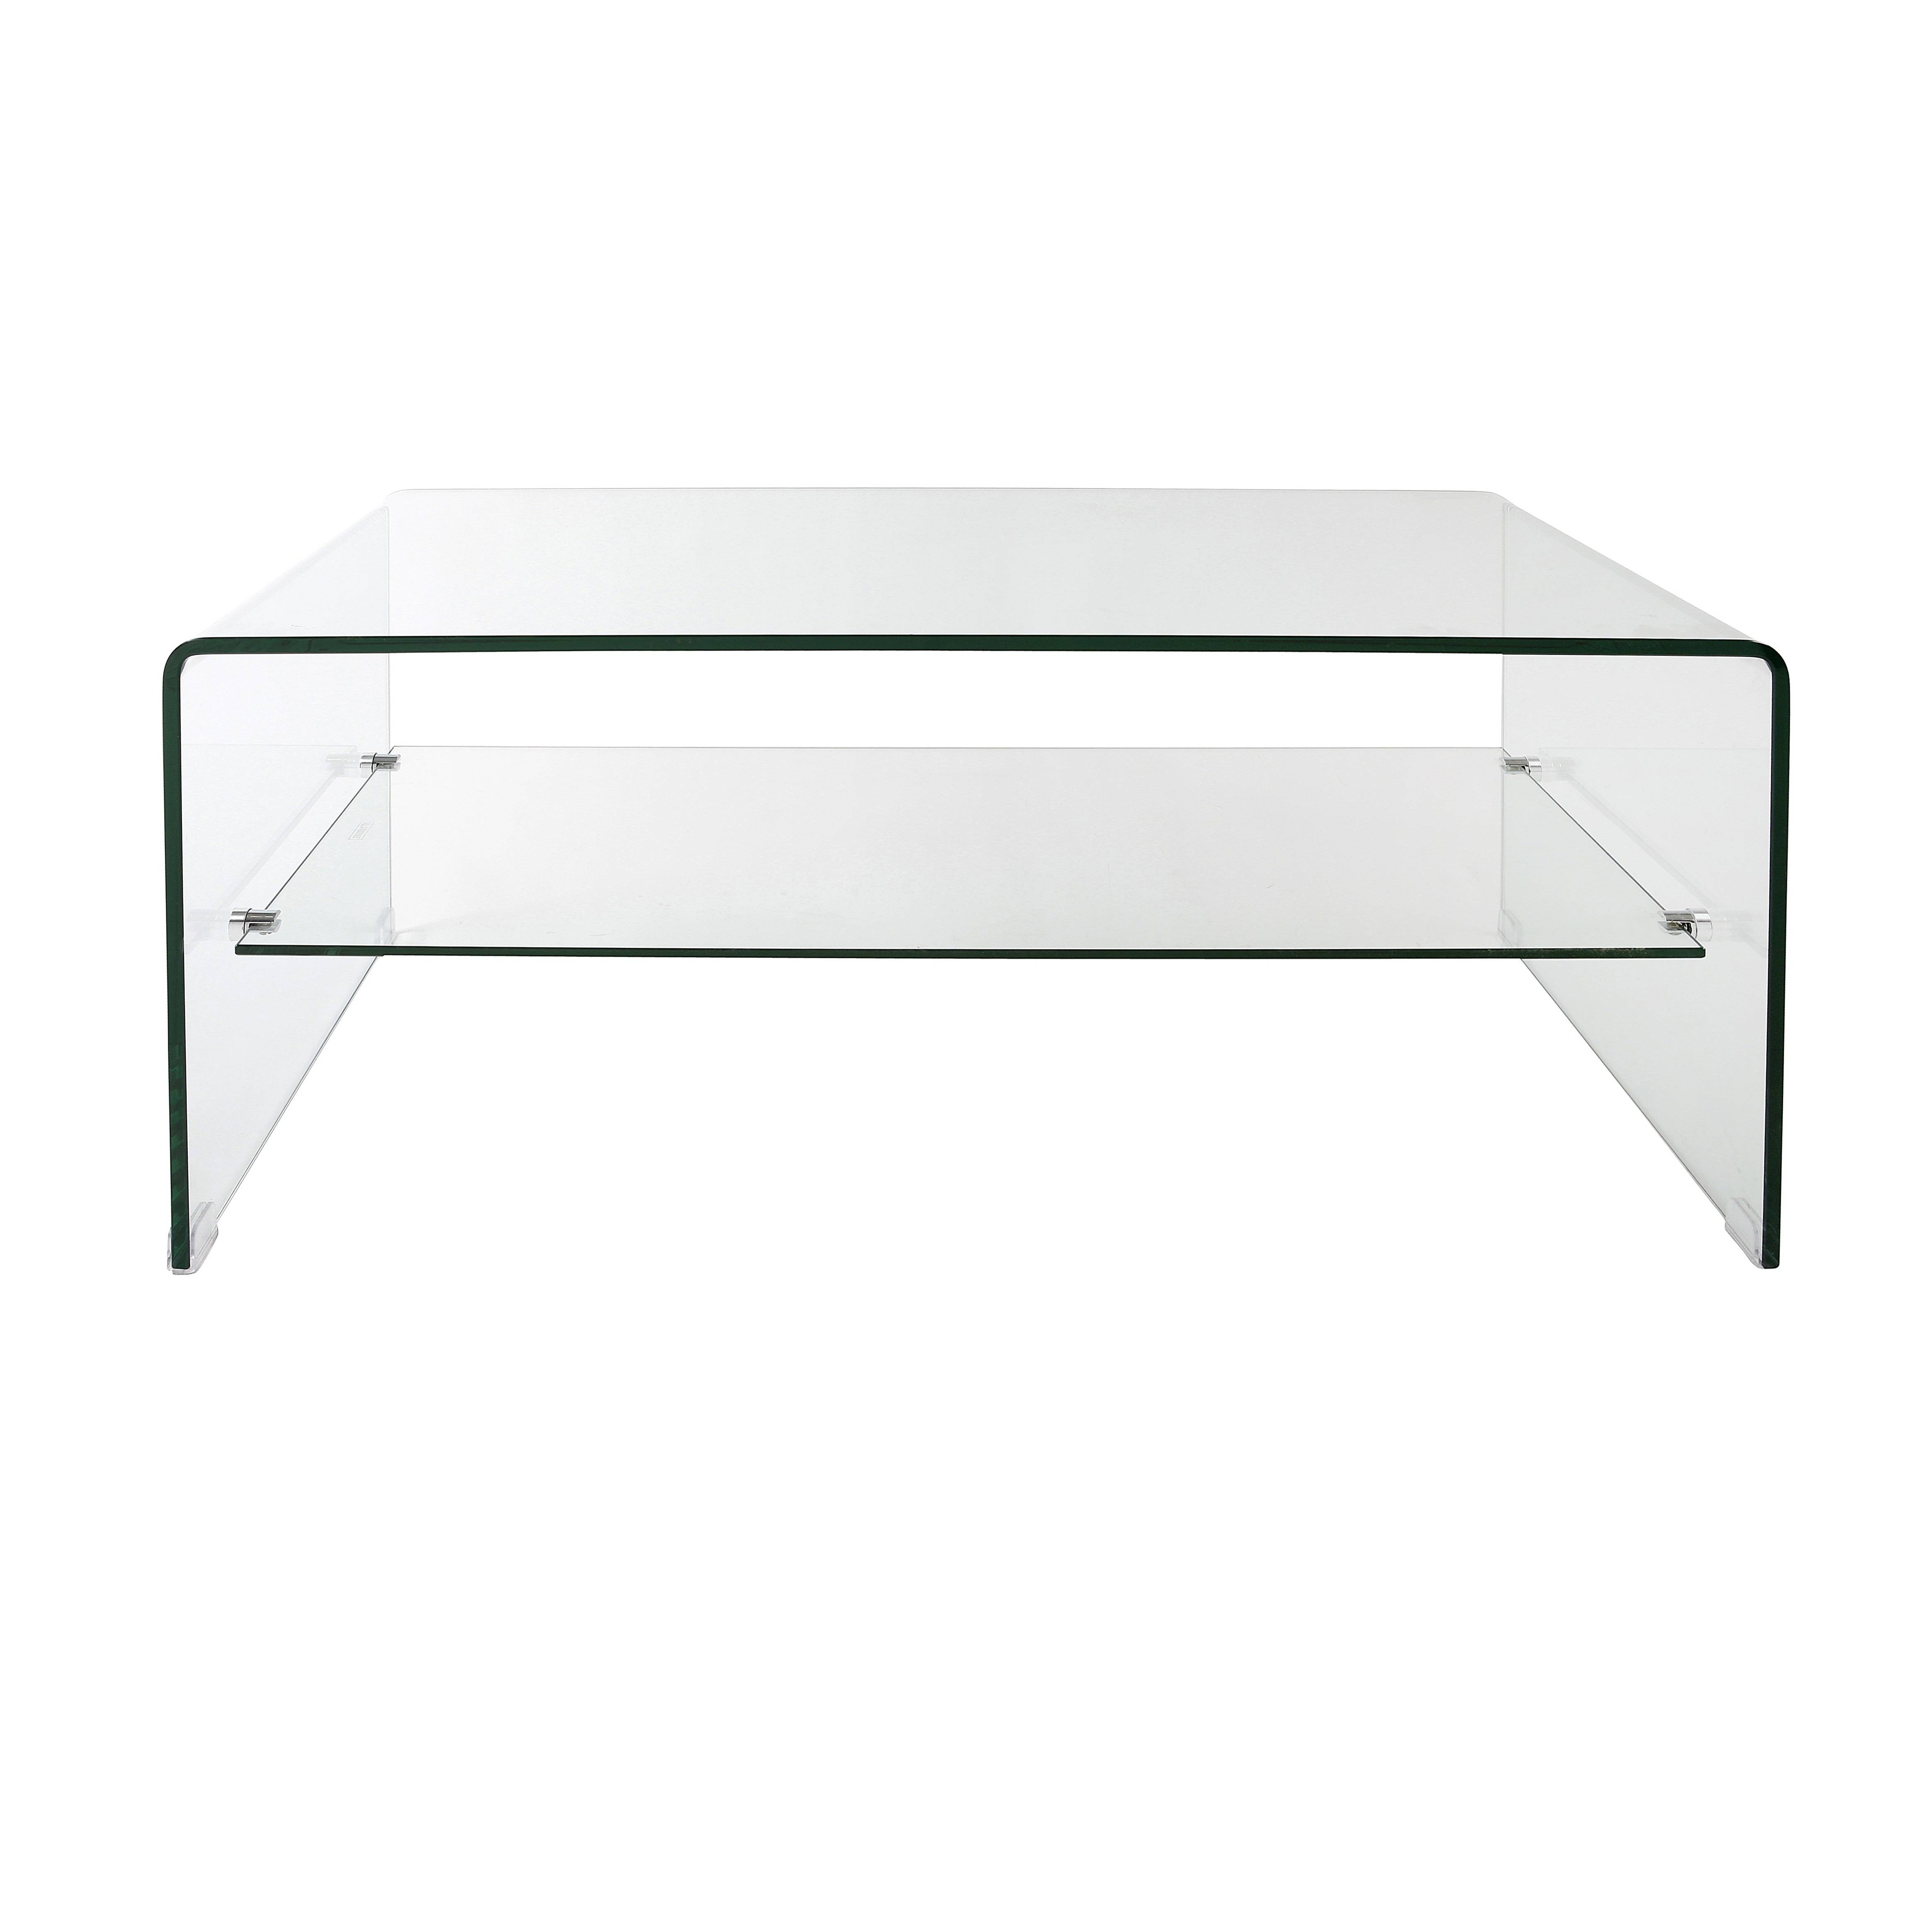 10 The Table Top Clear Coffee Tables Glass – Coffee Tables Glass throughout Transparent Glass Coffee Tables (Image 1 of 30)